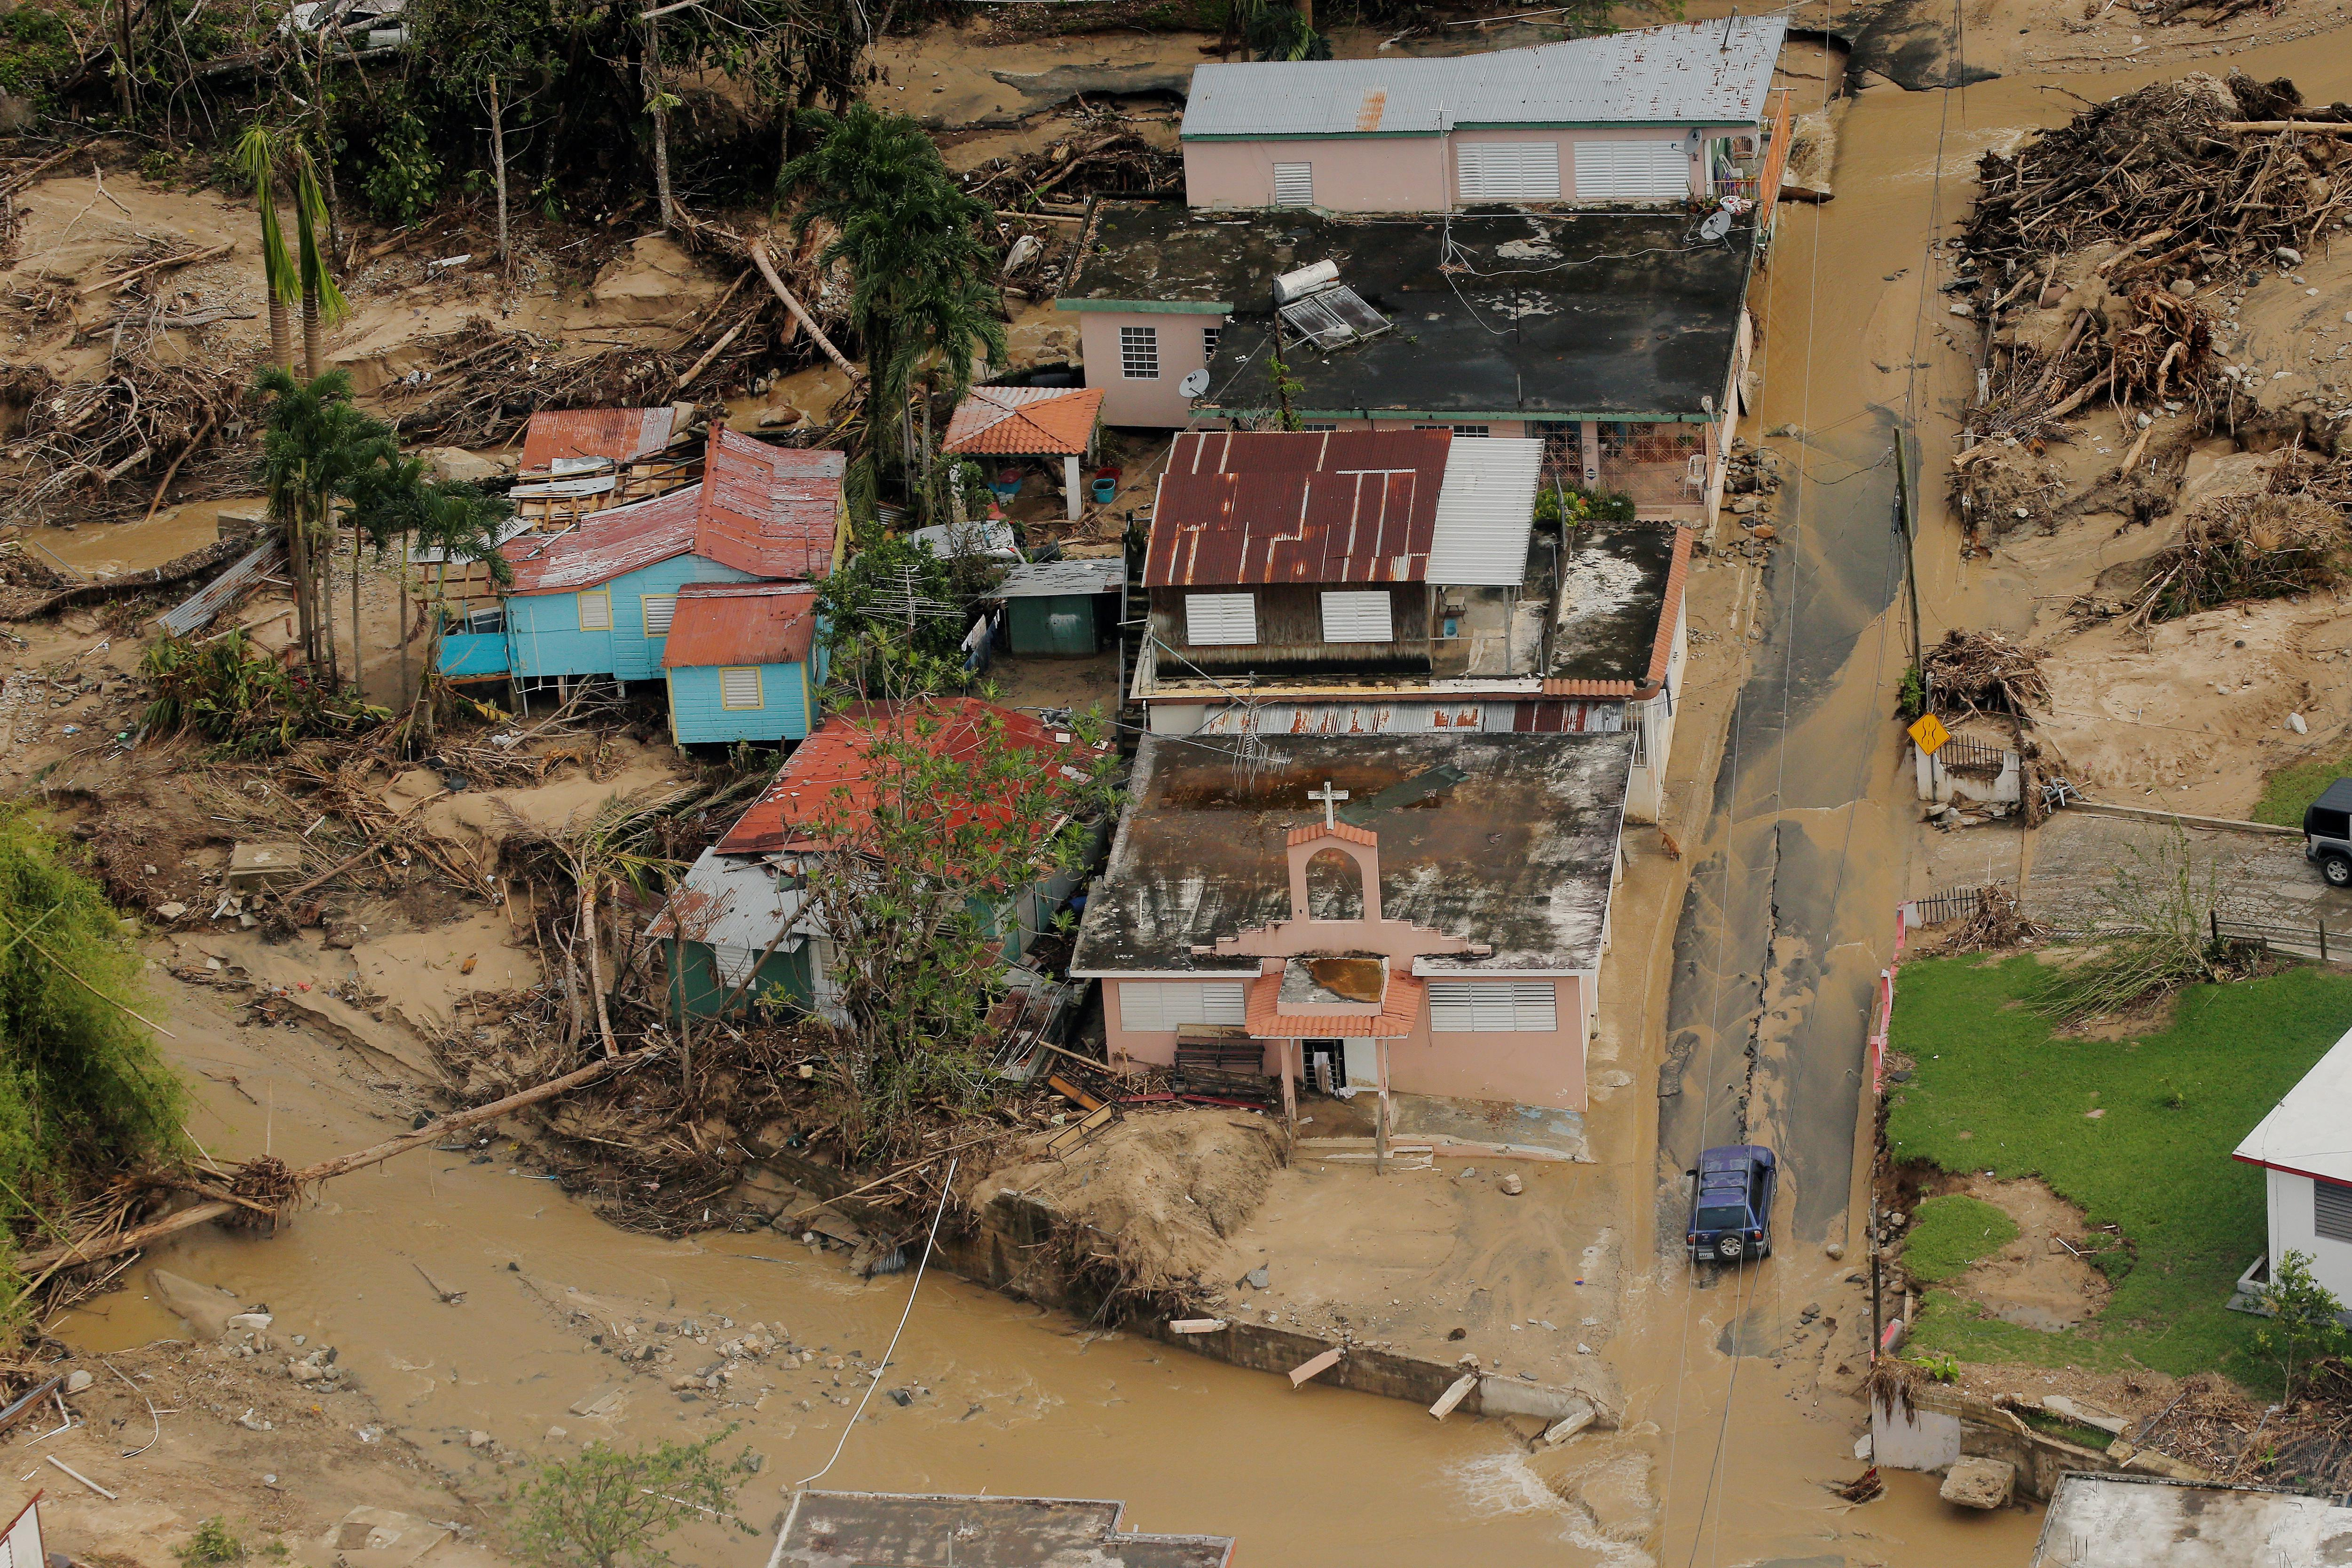 <p>Damage left by a flooded river is seen from the air during recovery efforts following Hurricane Maria near Utuado, Puerto Rico, Oct.10, 2017. (Photo: Lucas Jackson/Reuters) </p>